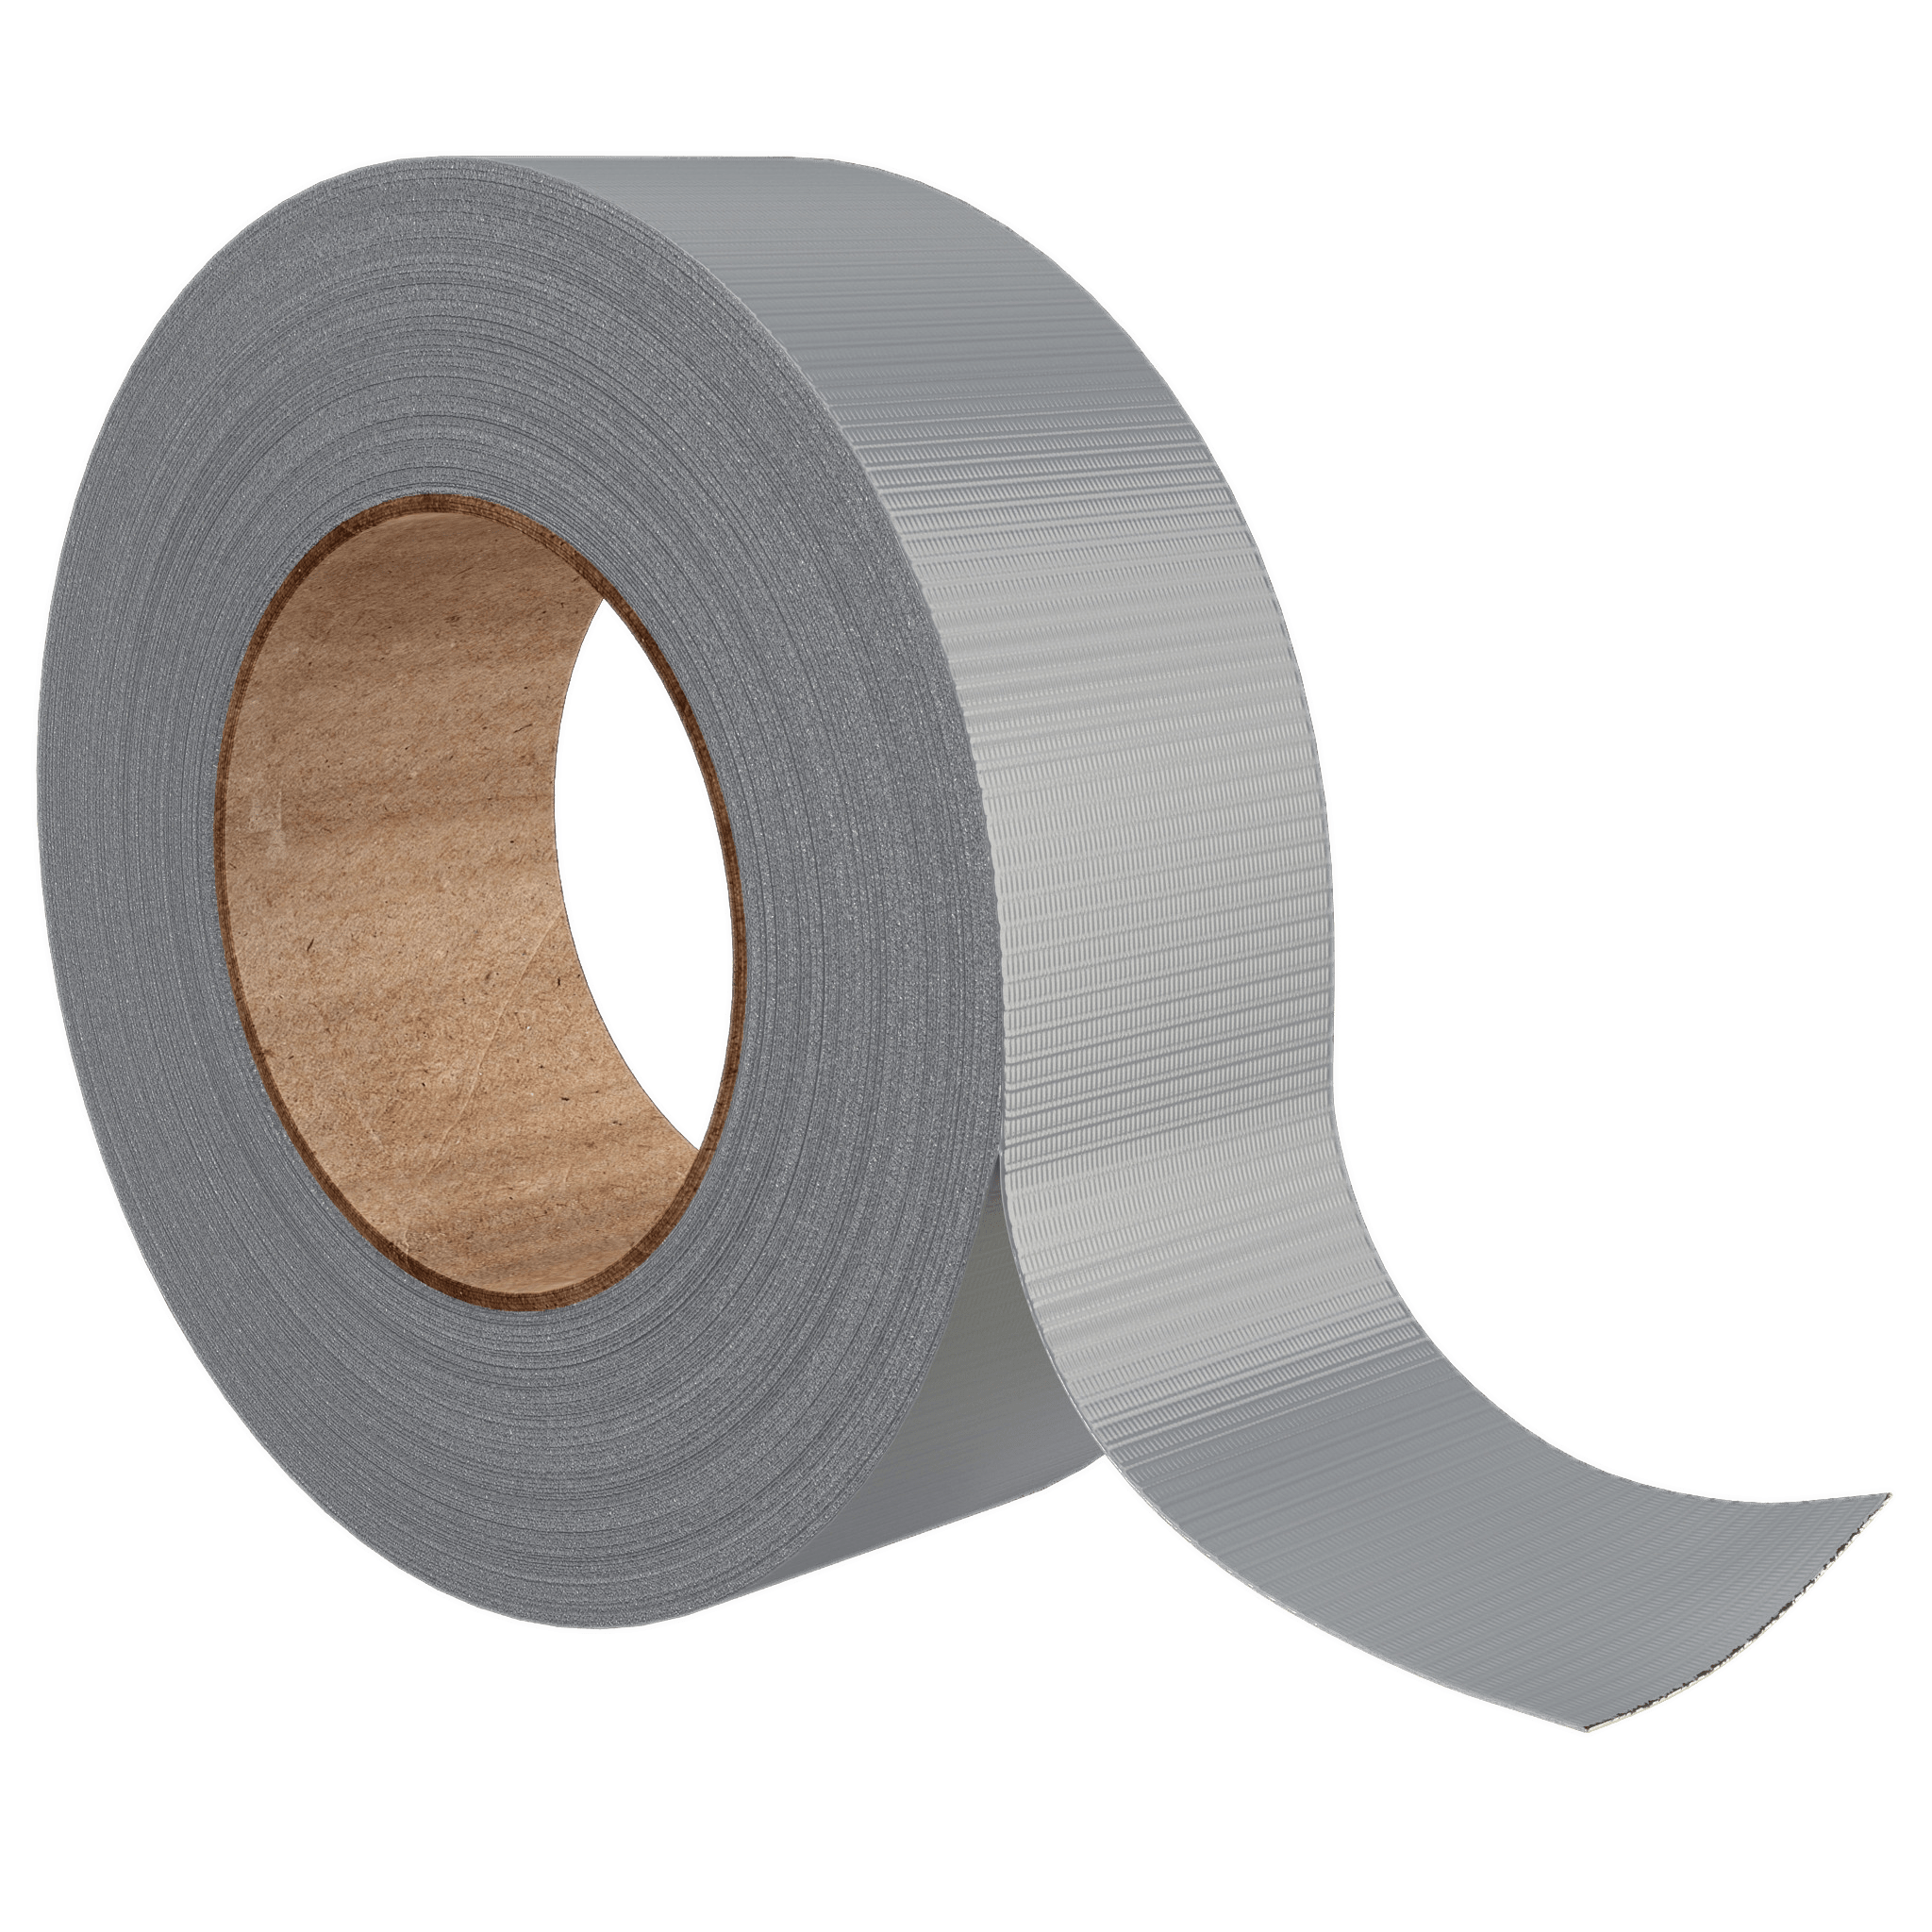 Grey Duct Tape transparent PNG.